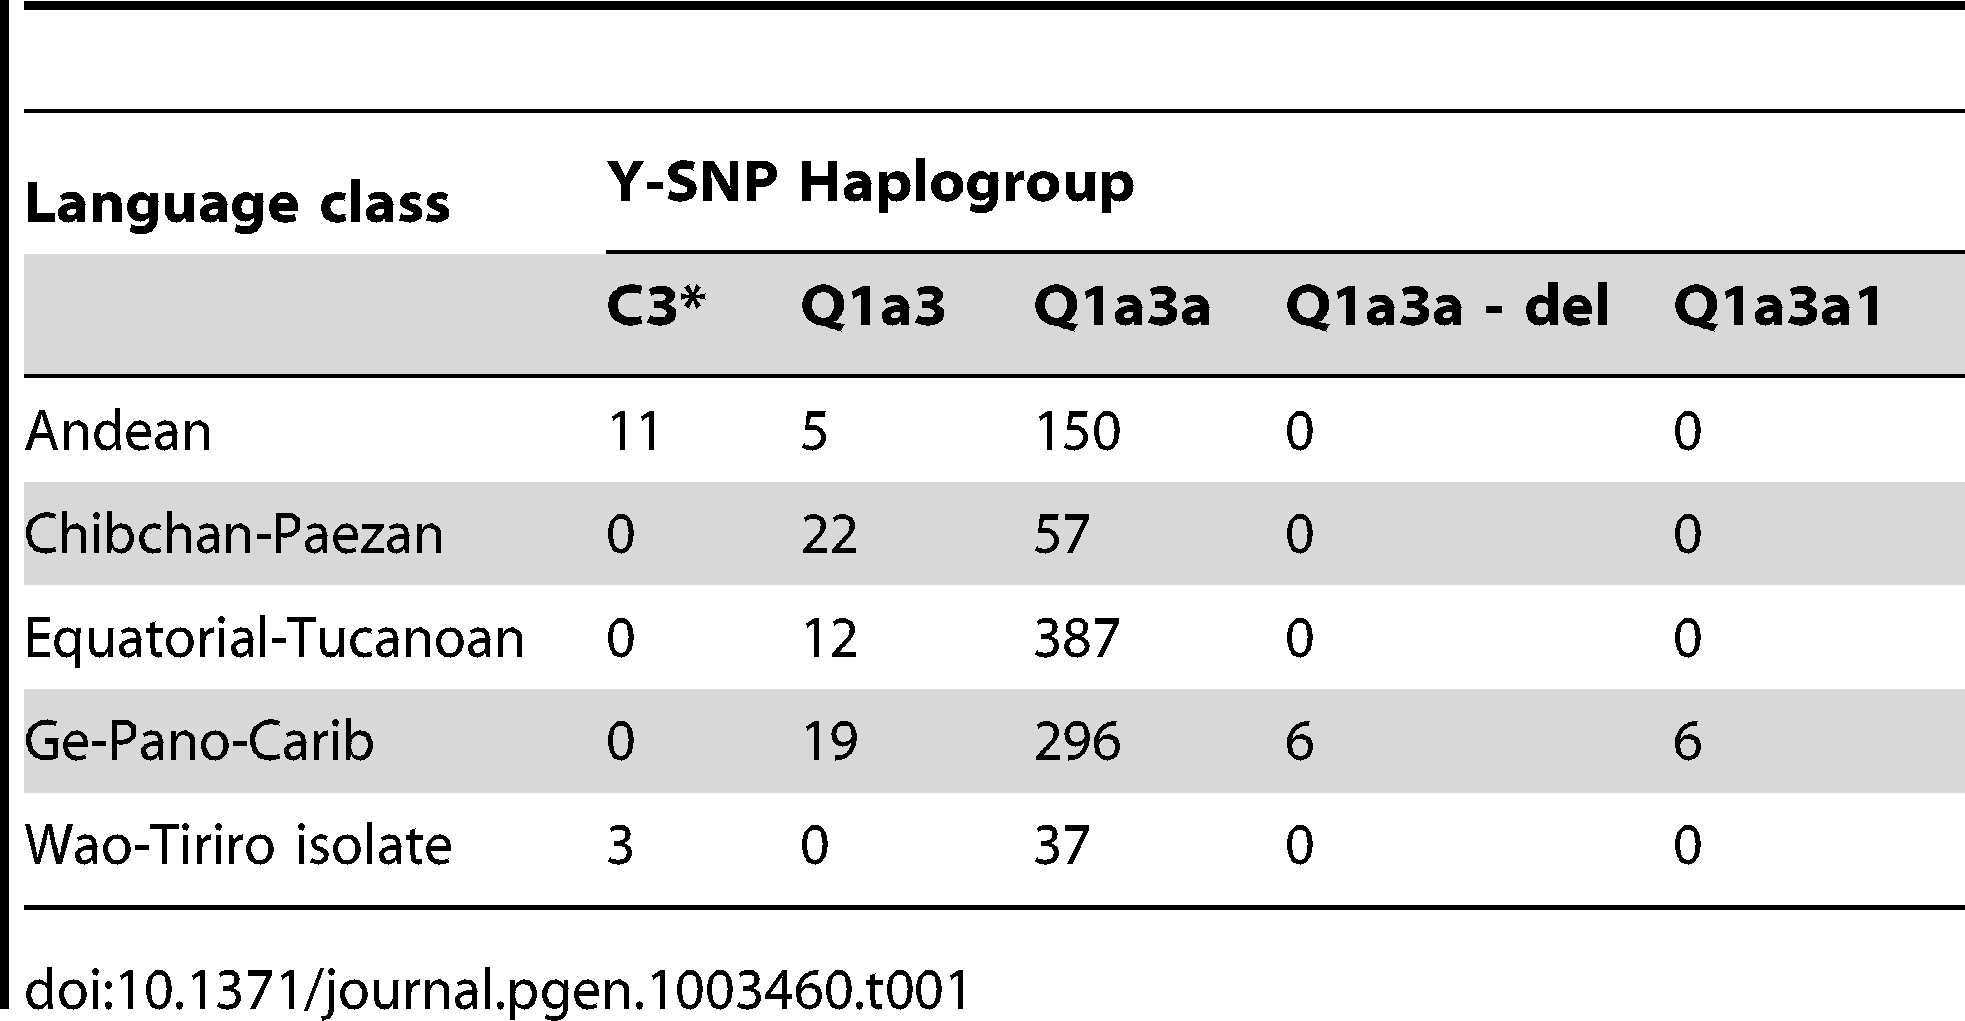 Correlation between Y-SNP haplogroup and language class.